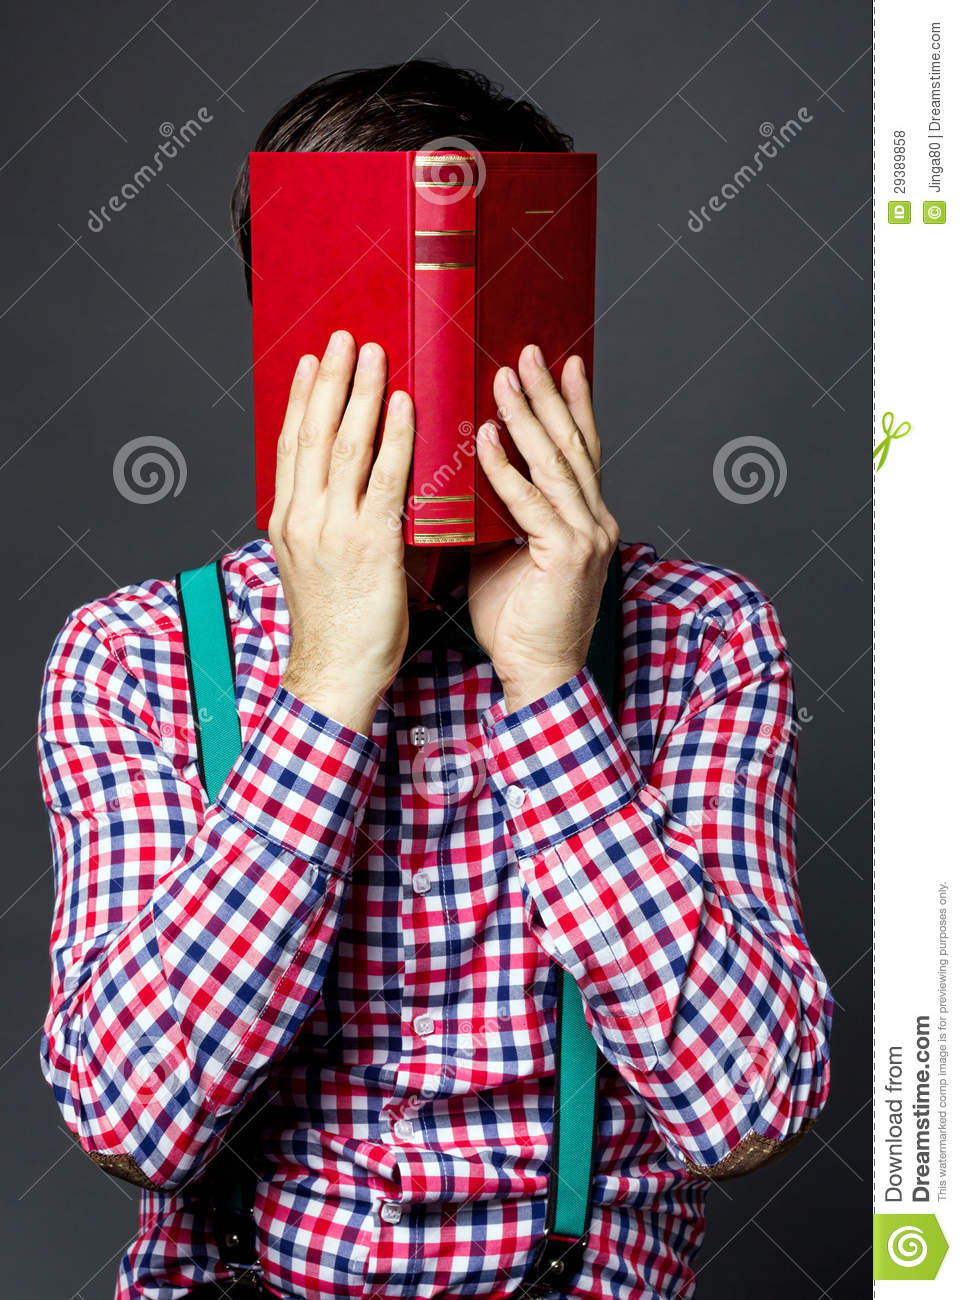 Book Covering Face : Portrait of a man covering his face with book royalty